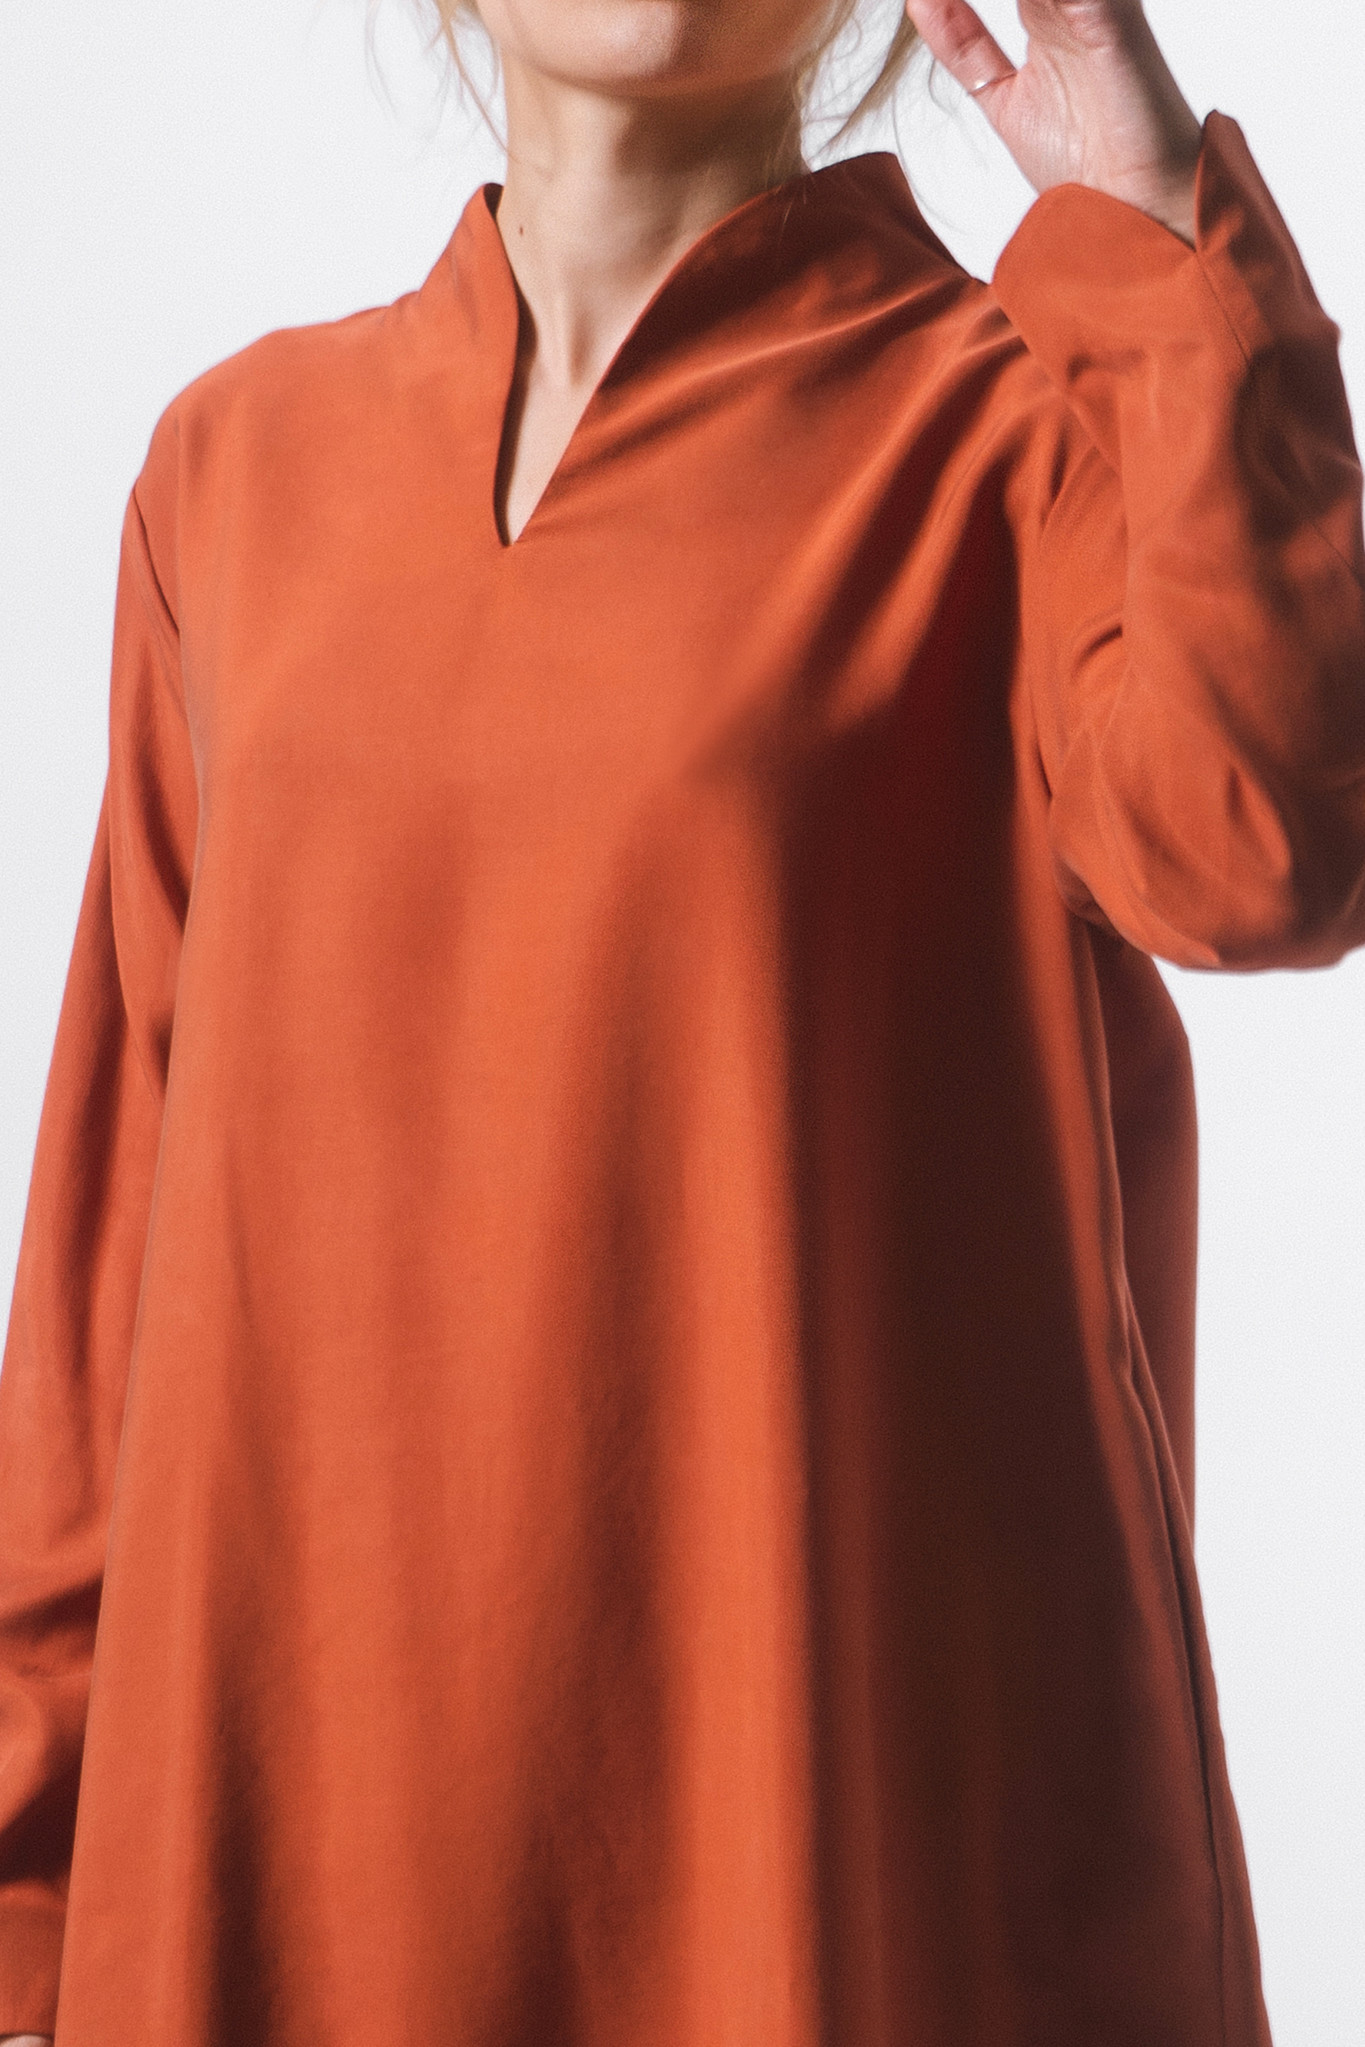 Elegant tunic made of Tencel - rust red-3